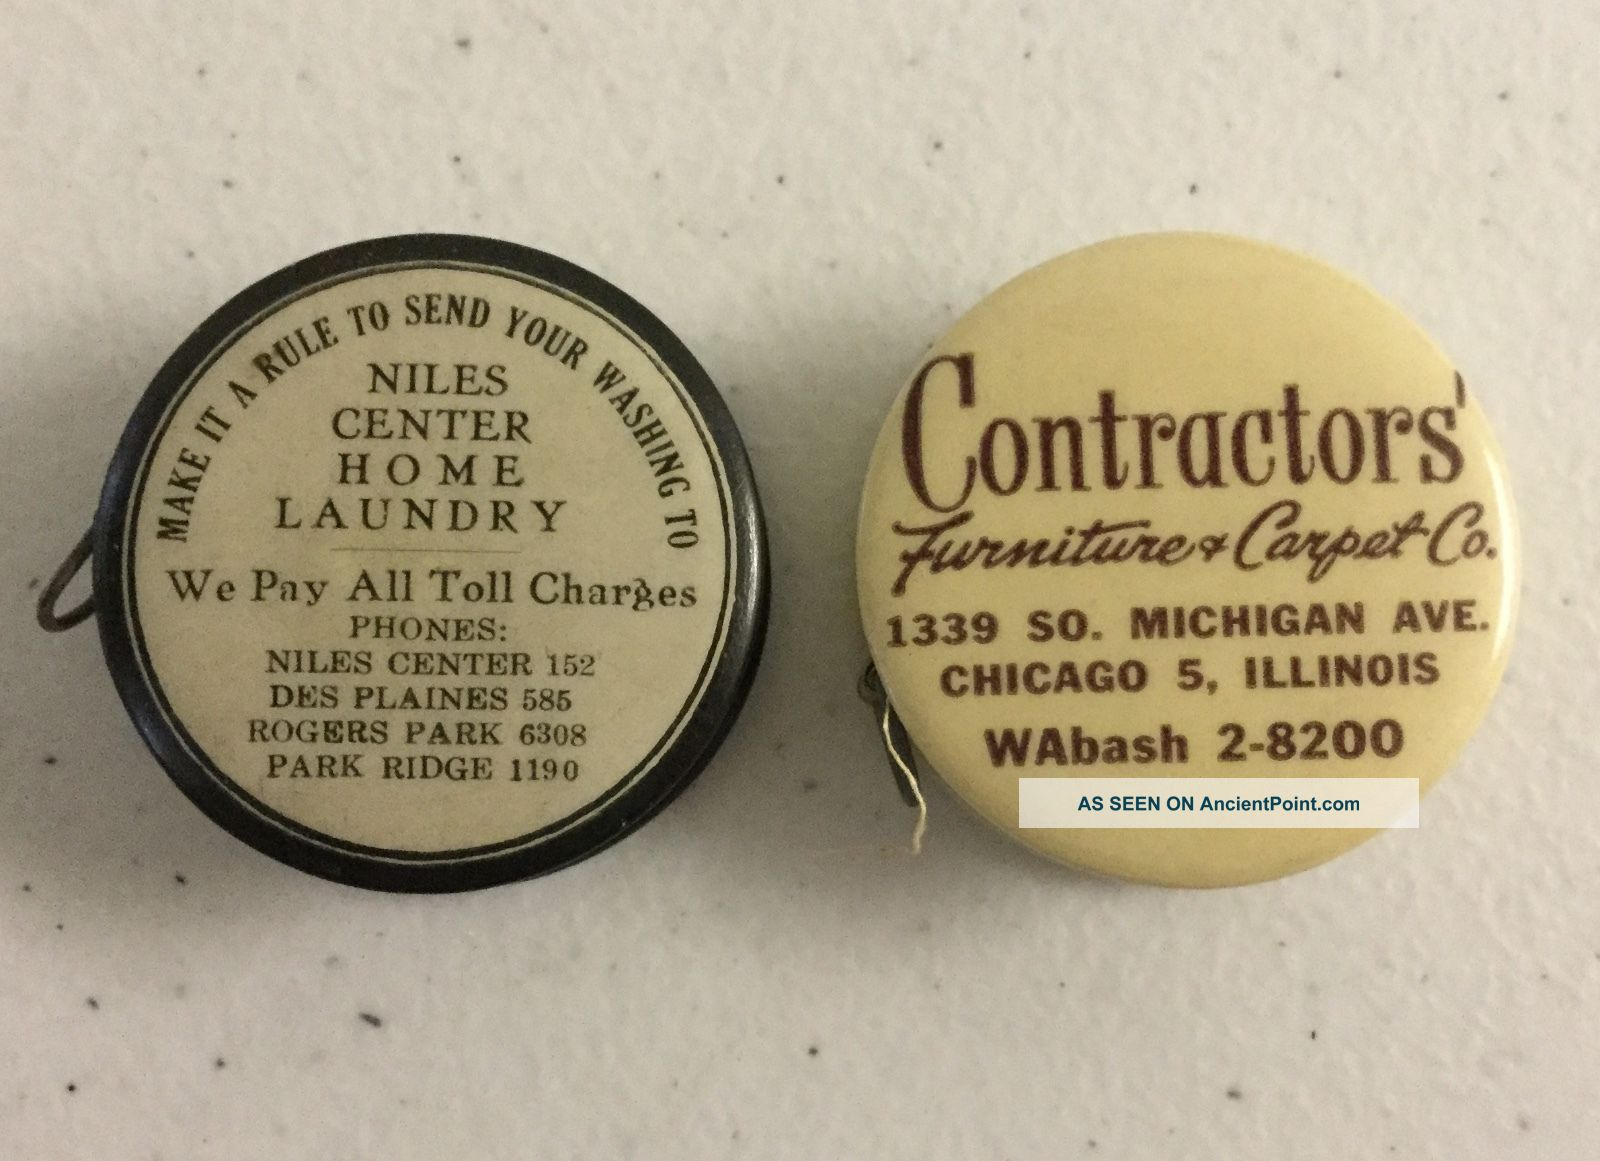 2 Antique Celluloid Sewing Tape Measure W/ Chicago Advertising & Drink Mixes Tools, Scissors & Measures photo